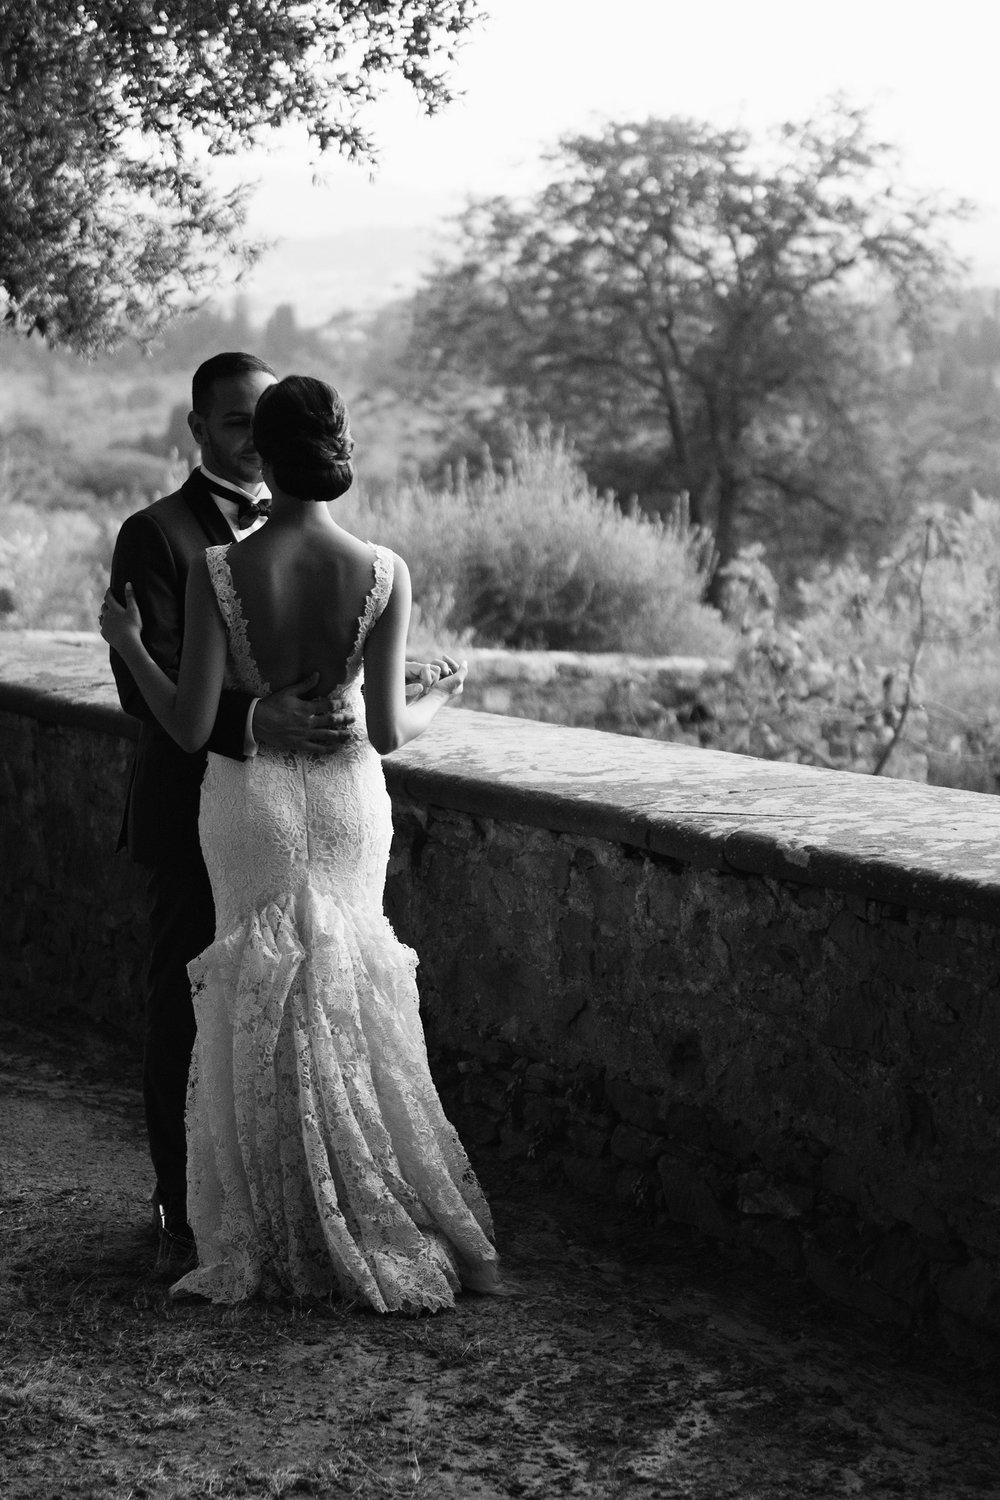 katie_mitchell_wedding_florence_tuscany_villa_di_miano_wedding_photography_54.jpg